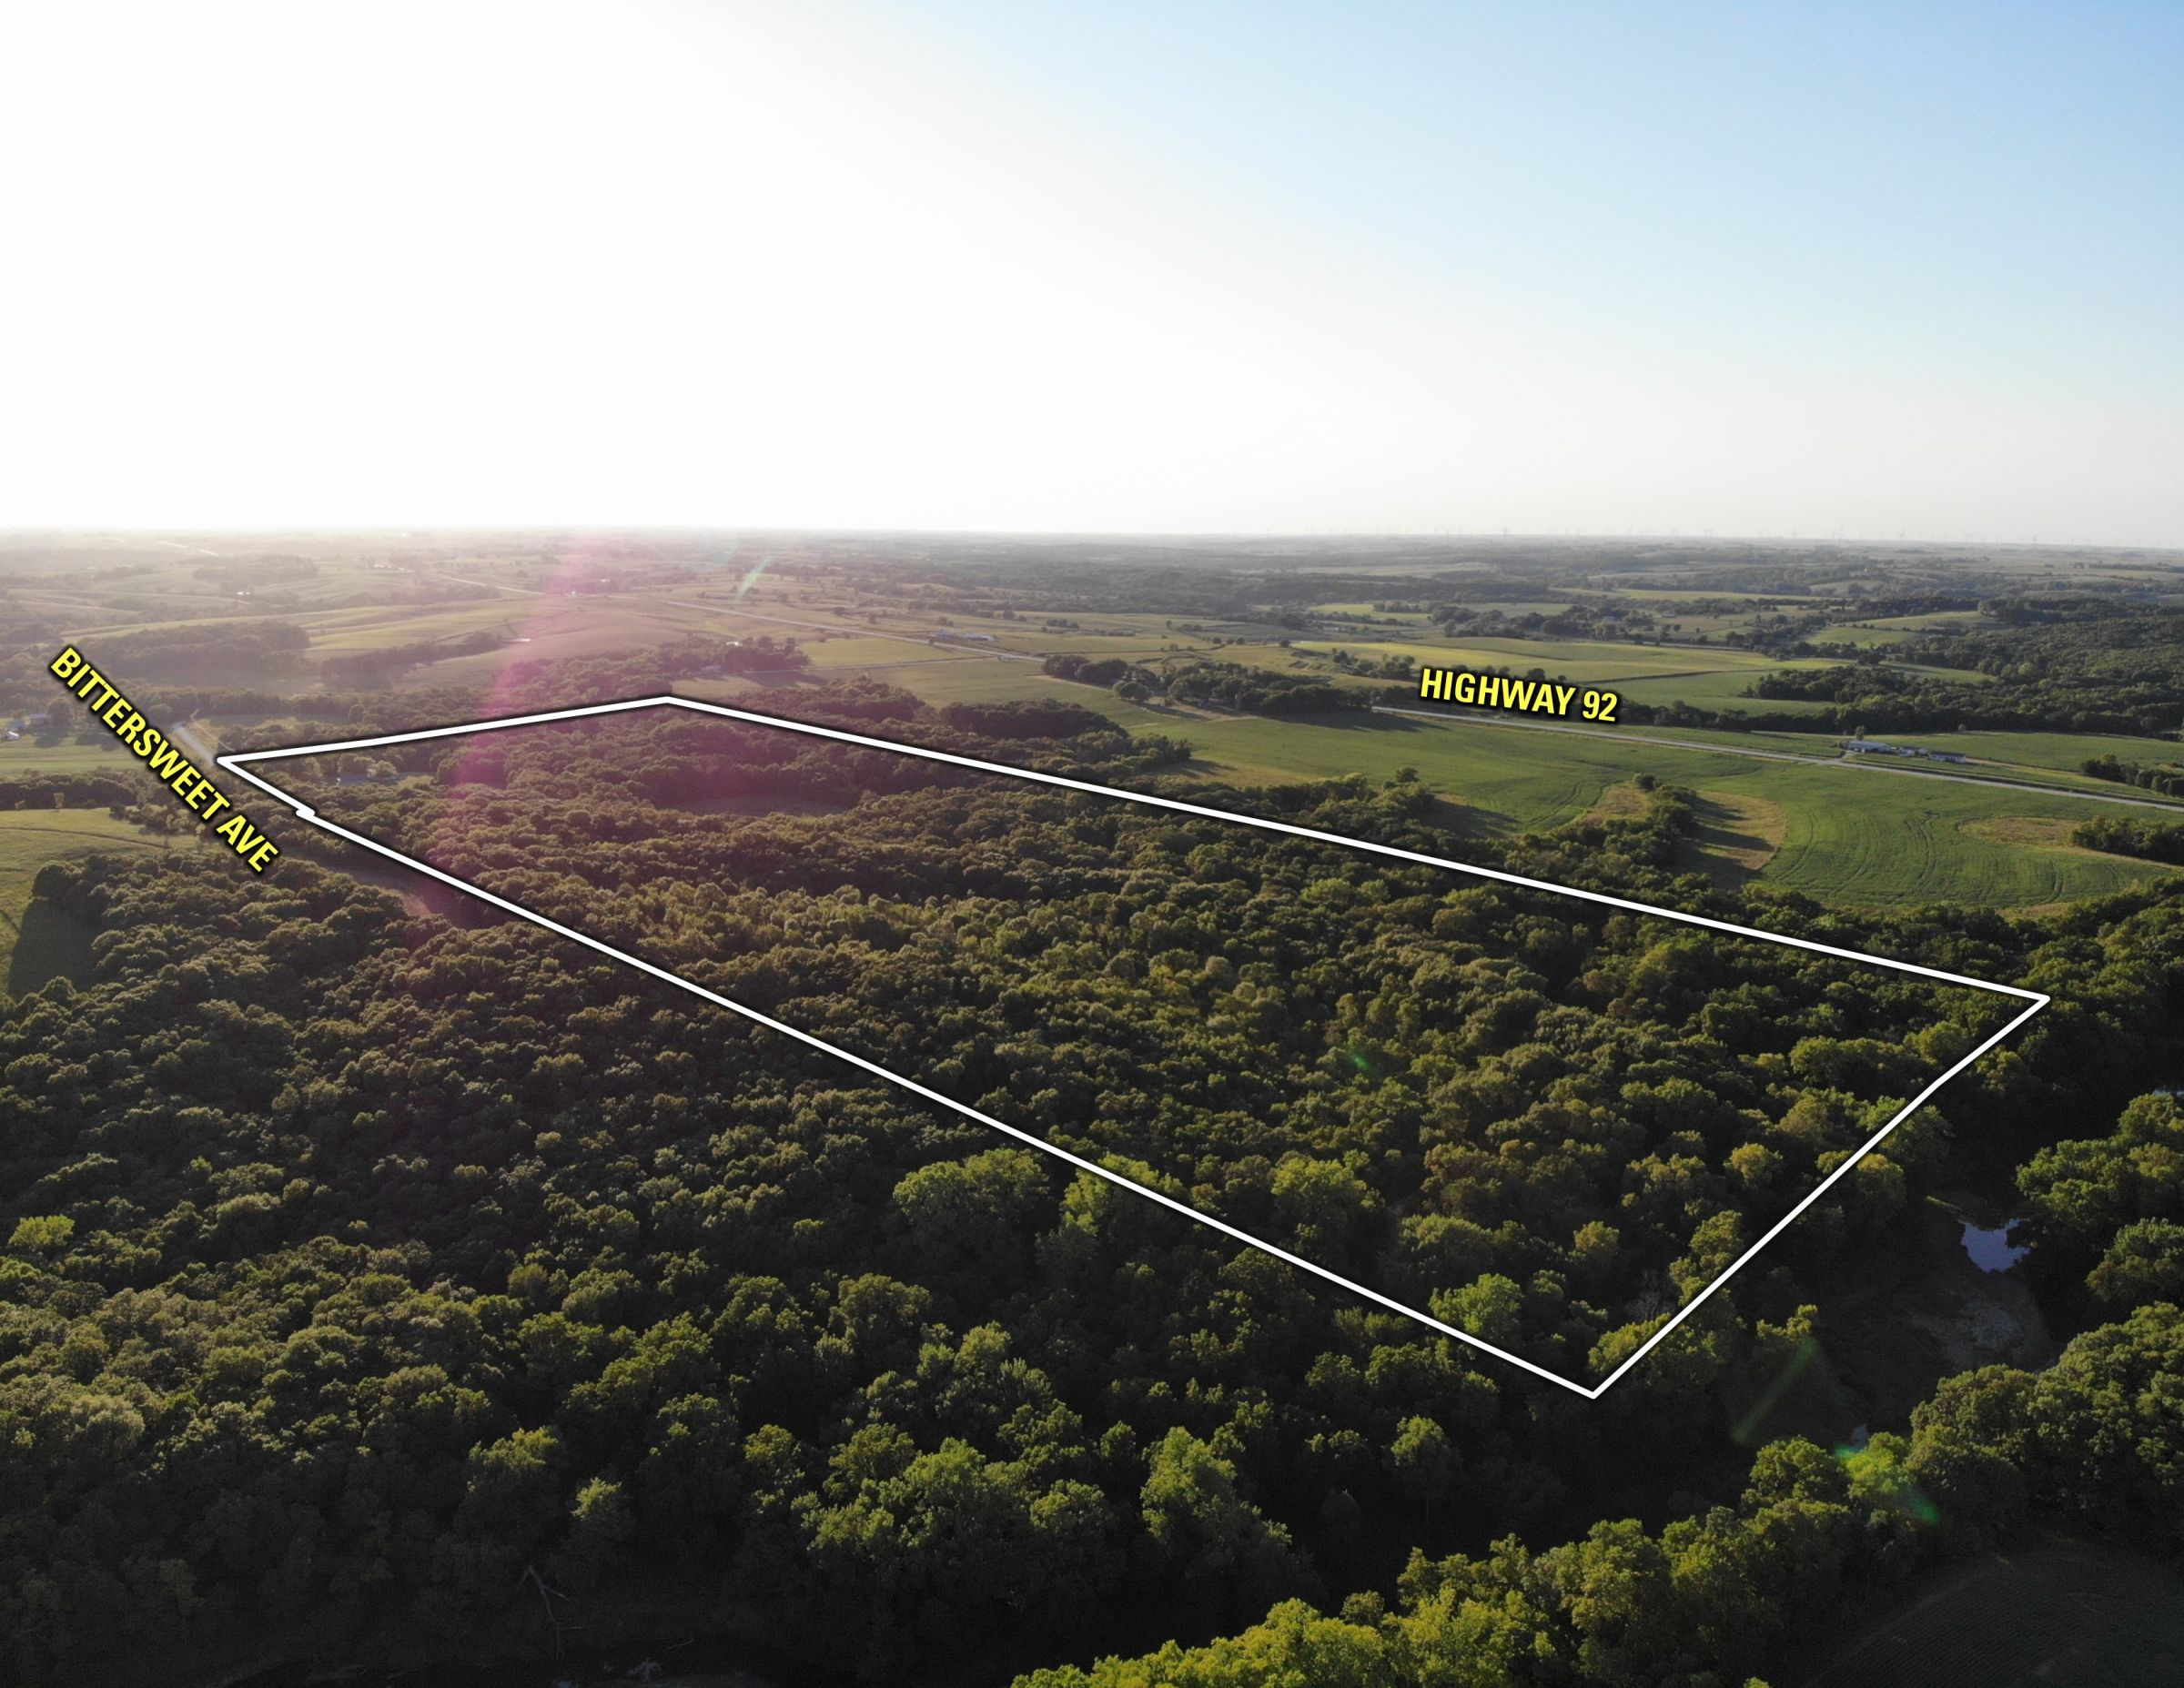 residential-land-madison-county-iowa-106-acres-listing-number-15123-1-2020-08-24-163902.JPG